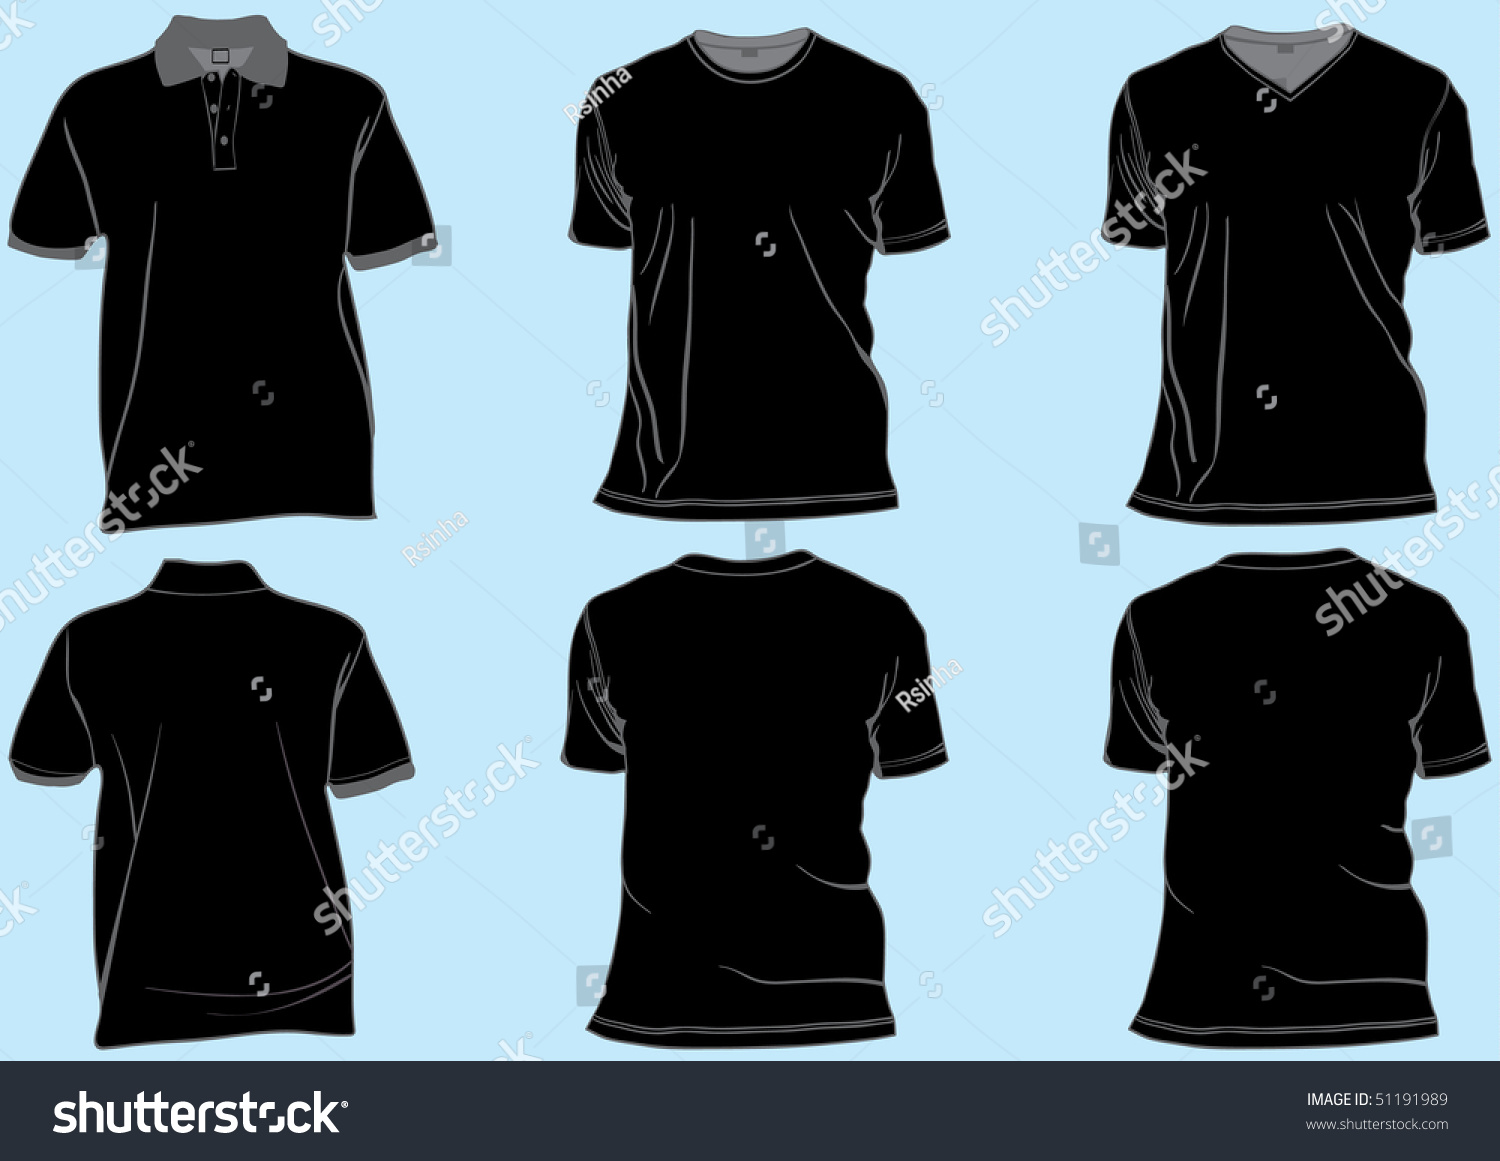 Black t shirt vector template - Shirt Or Golf Tshirt Set Template With Collar V Neck And Round Neck